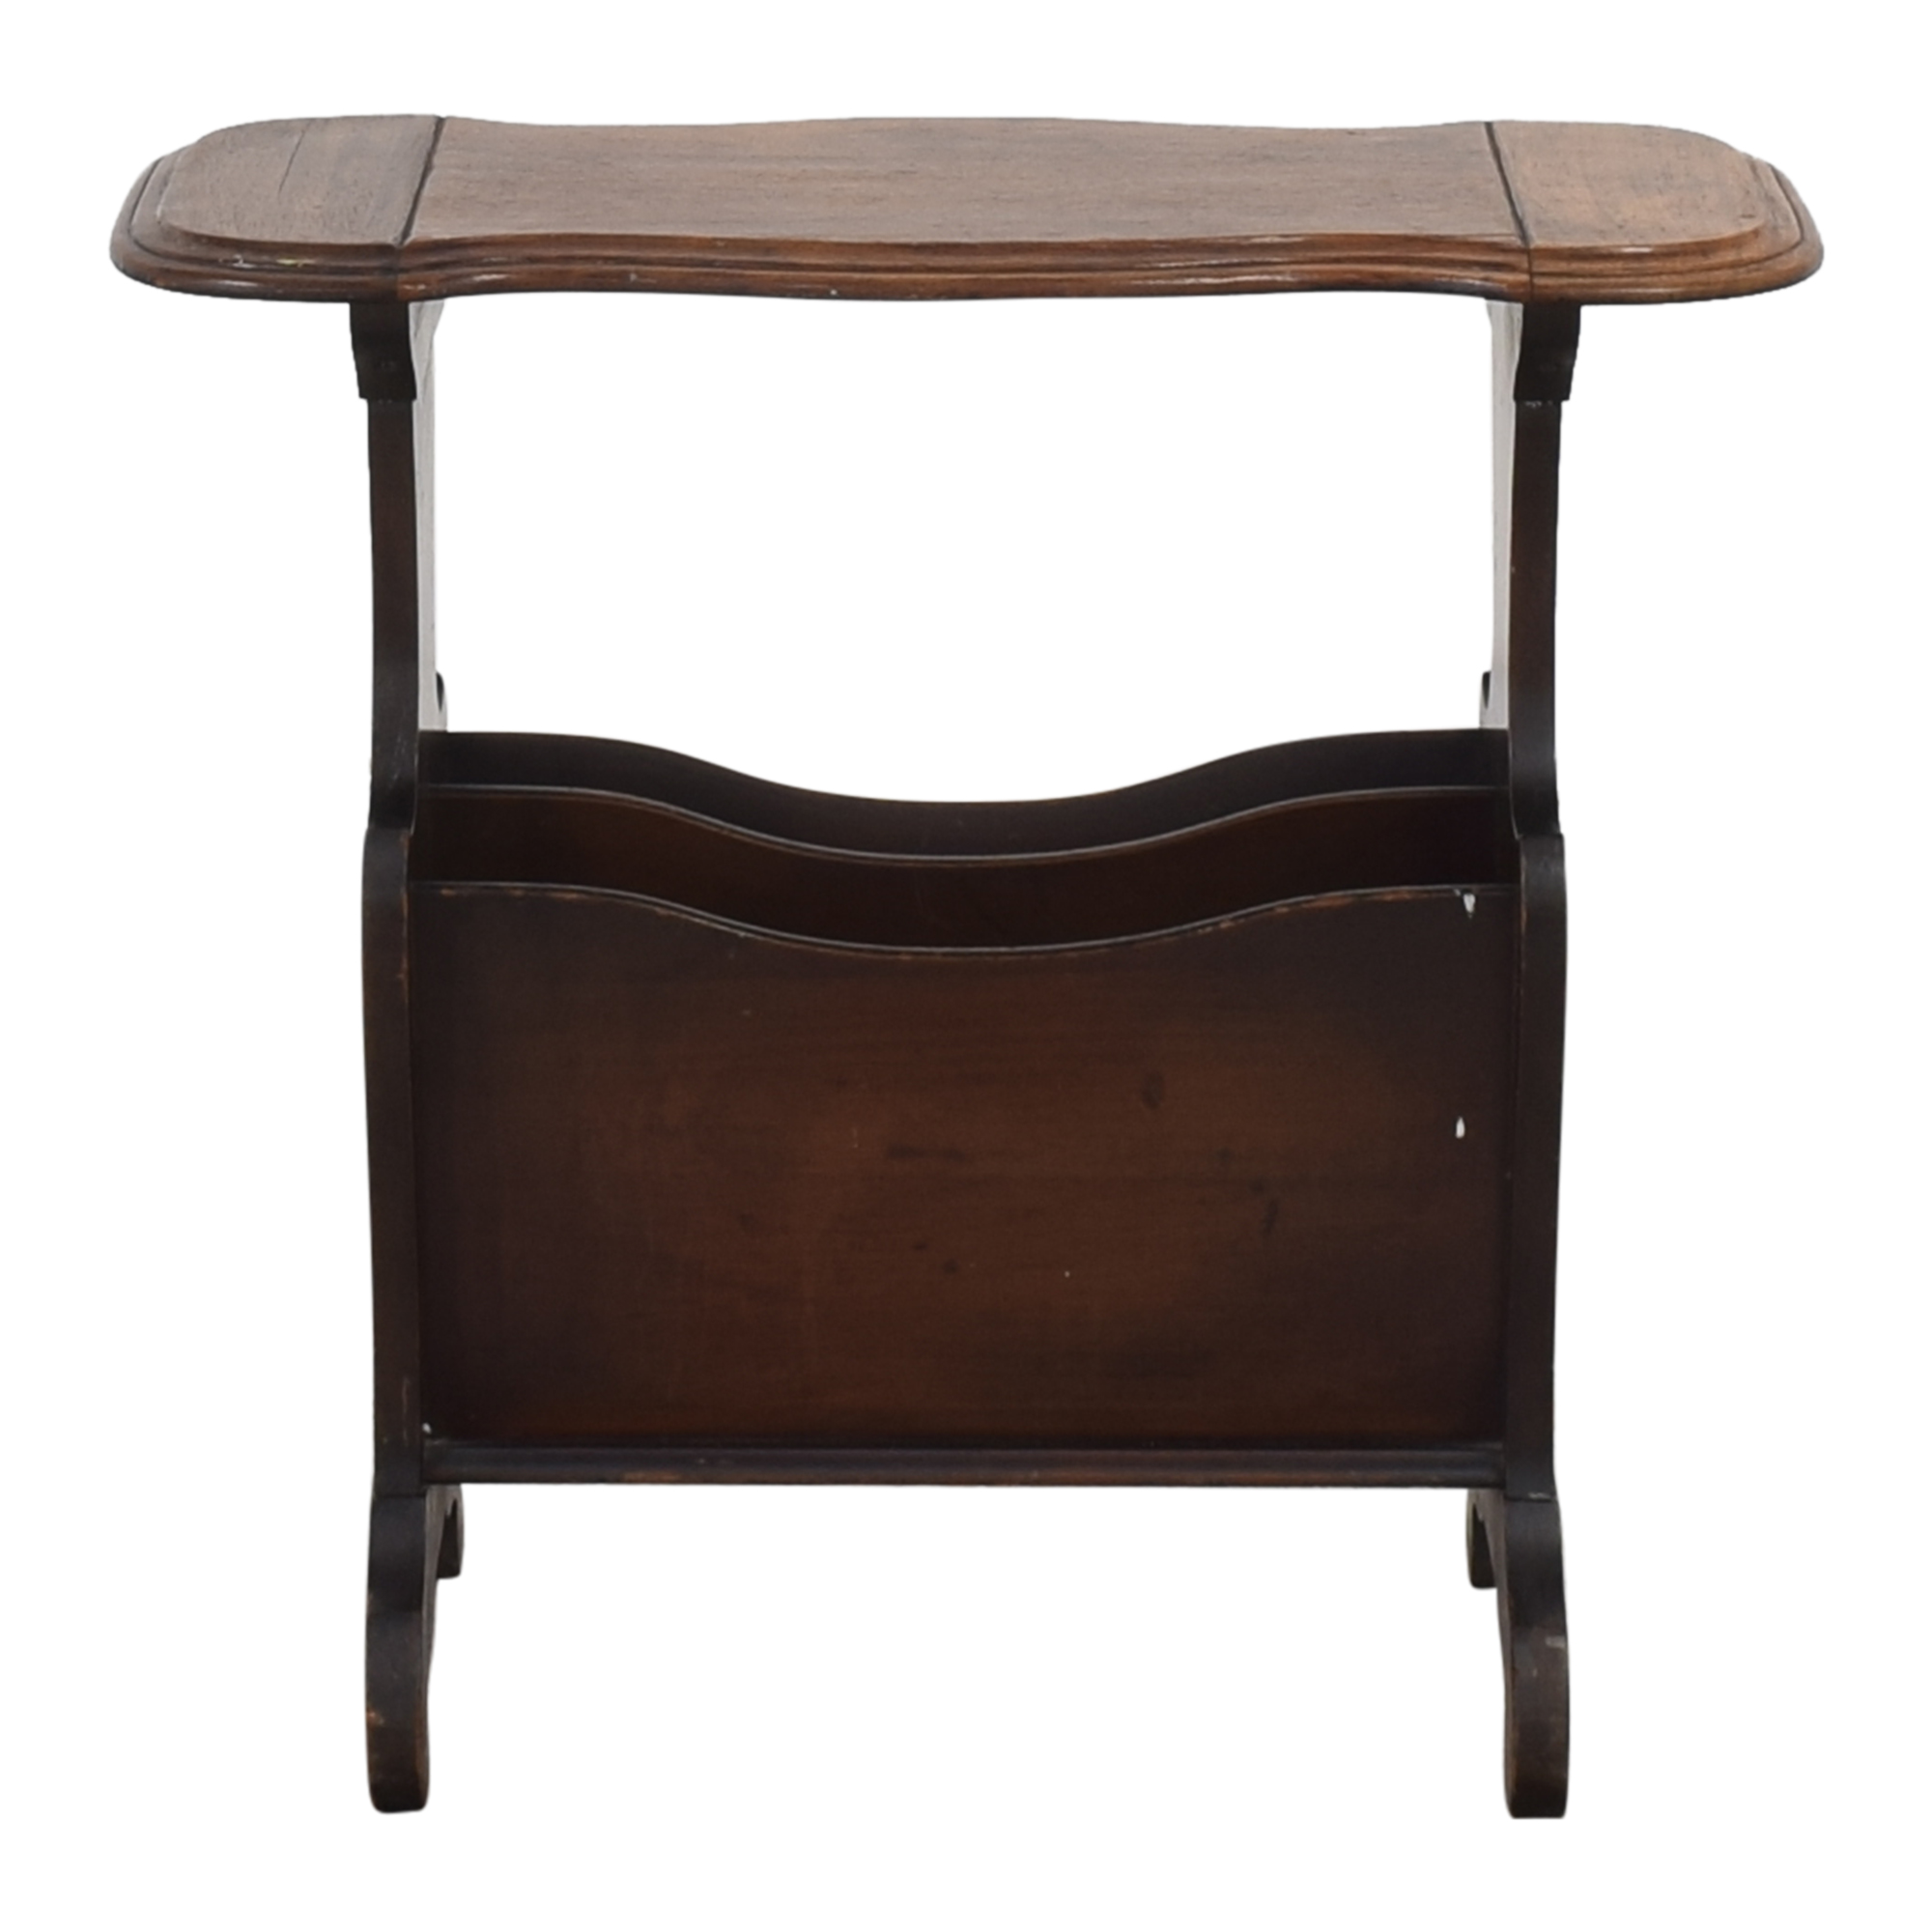 buy  Vintage Accent Table online